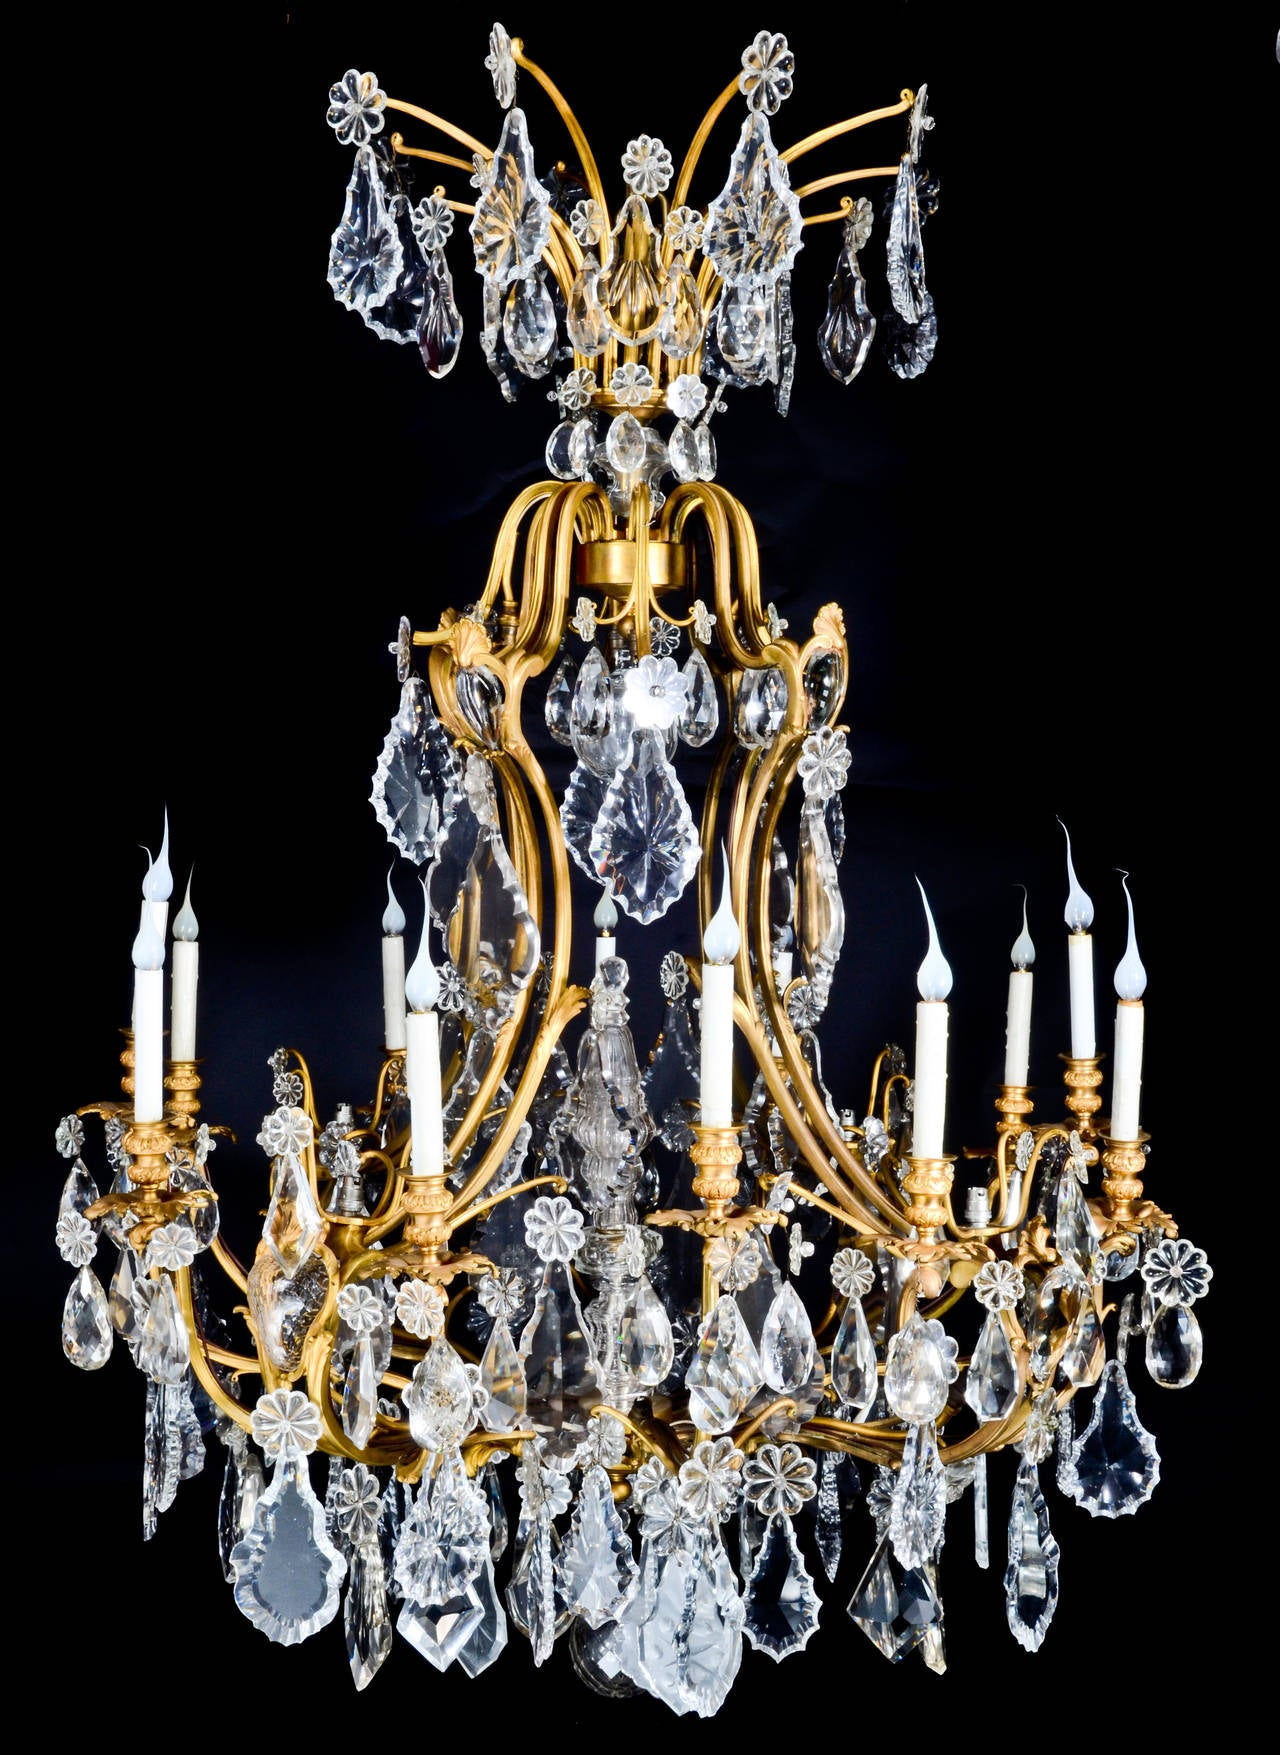 A Large Antique French Louis XVI Style Gilt Bronze & cut crystal cage form multi light chandelier of great quality embellished with large cut crystal prisms, 19th century.